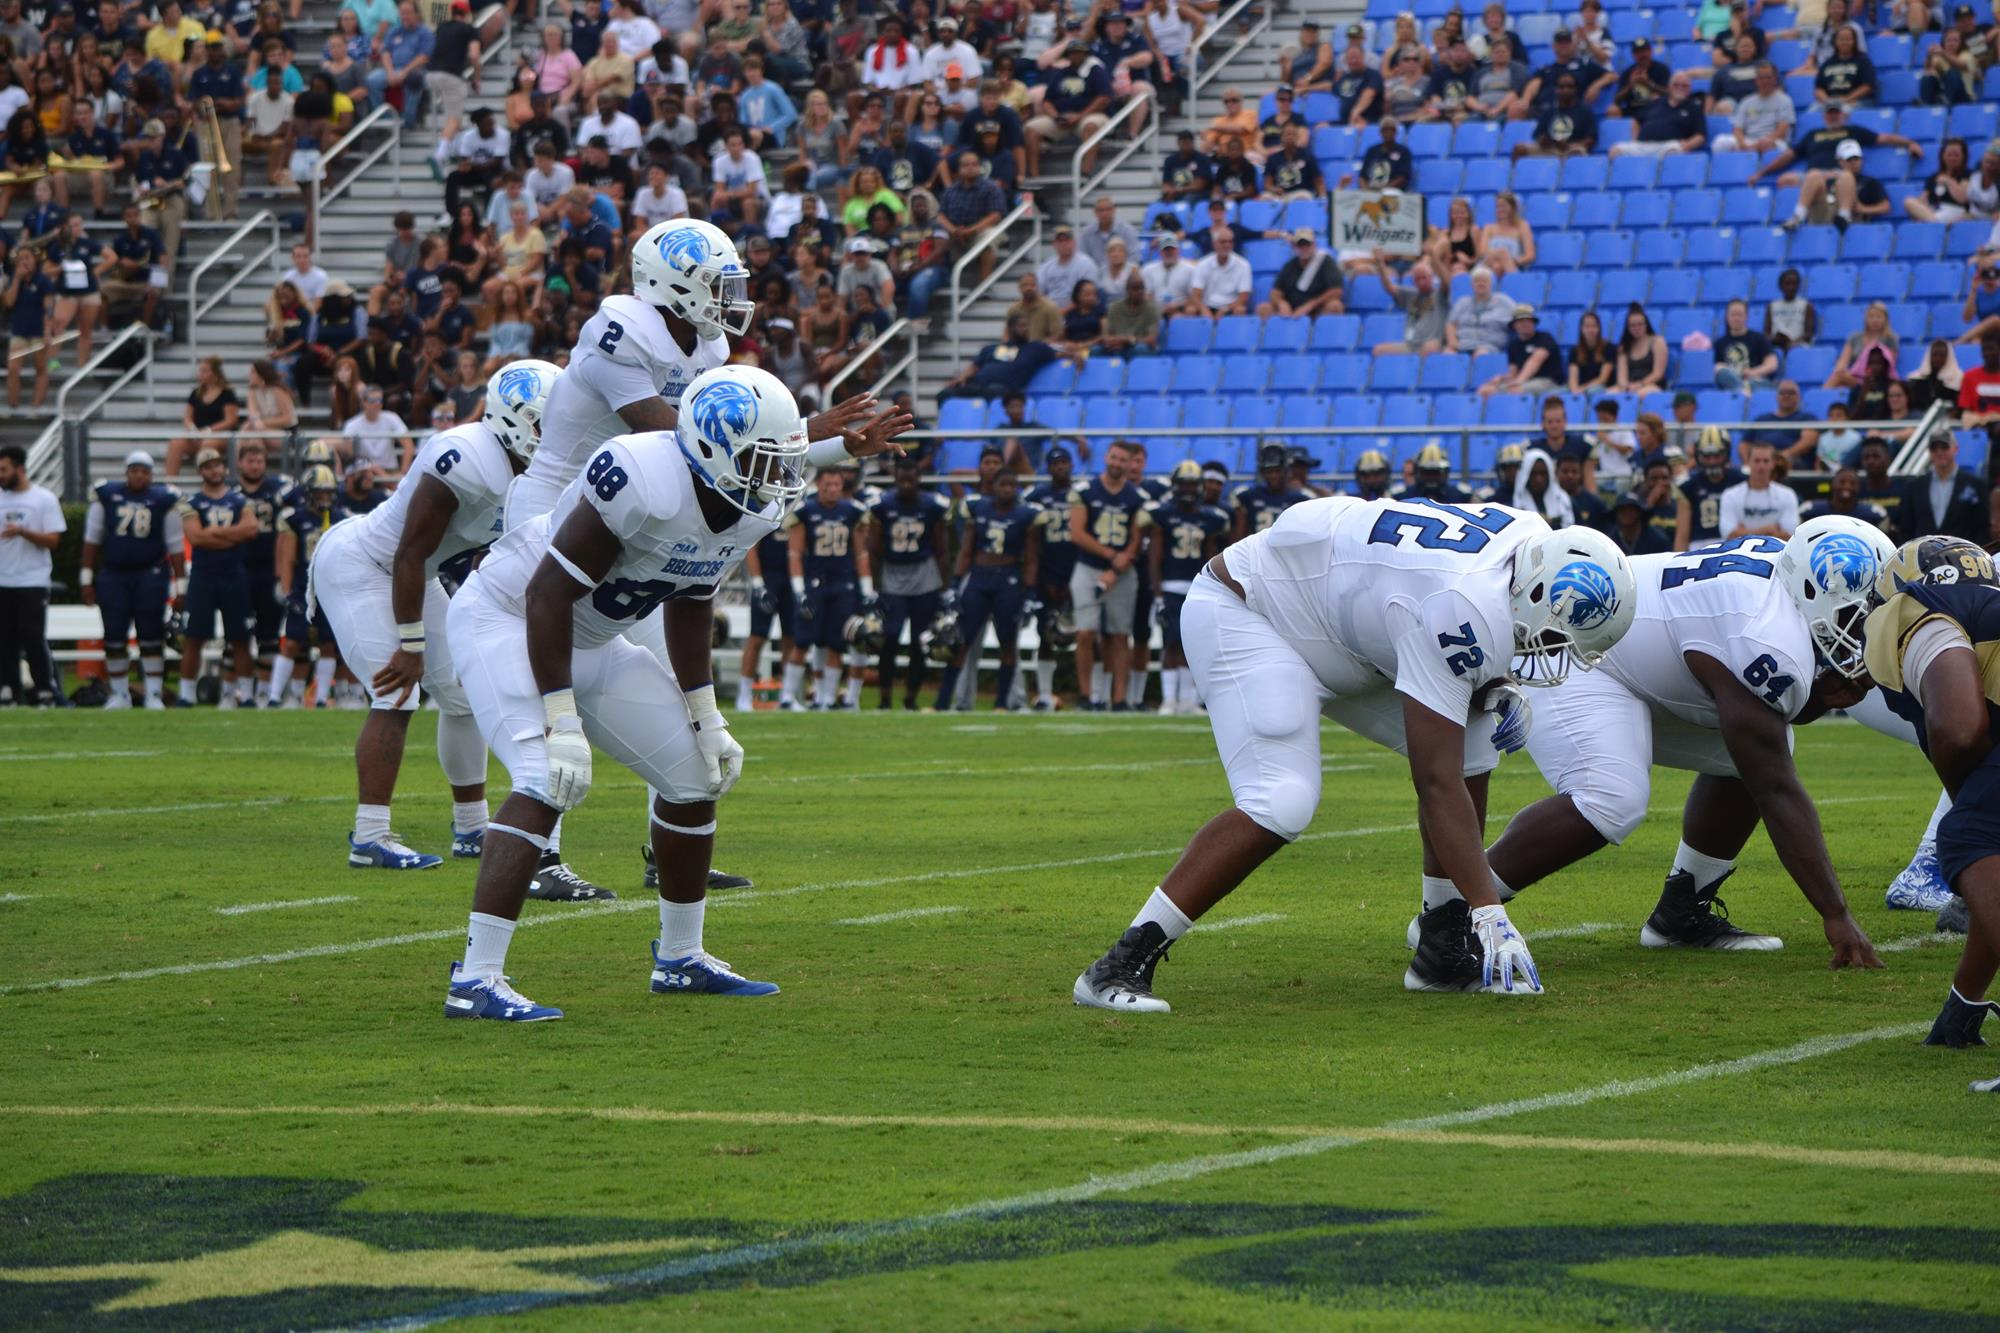 MEAC/SWAC SPORTS MAIN STREET™: Fayetteville State Cancels ...North Carolina Football Game Cancelled